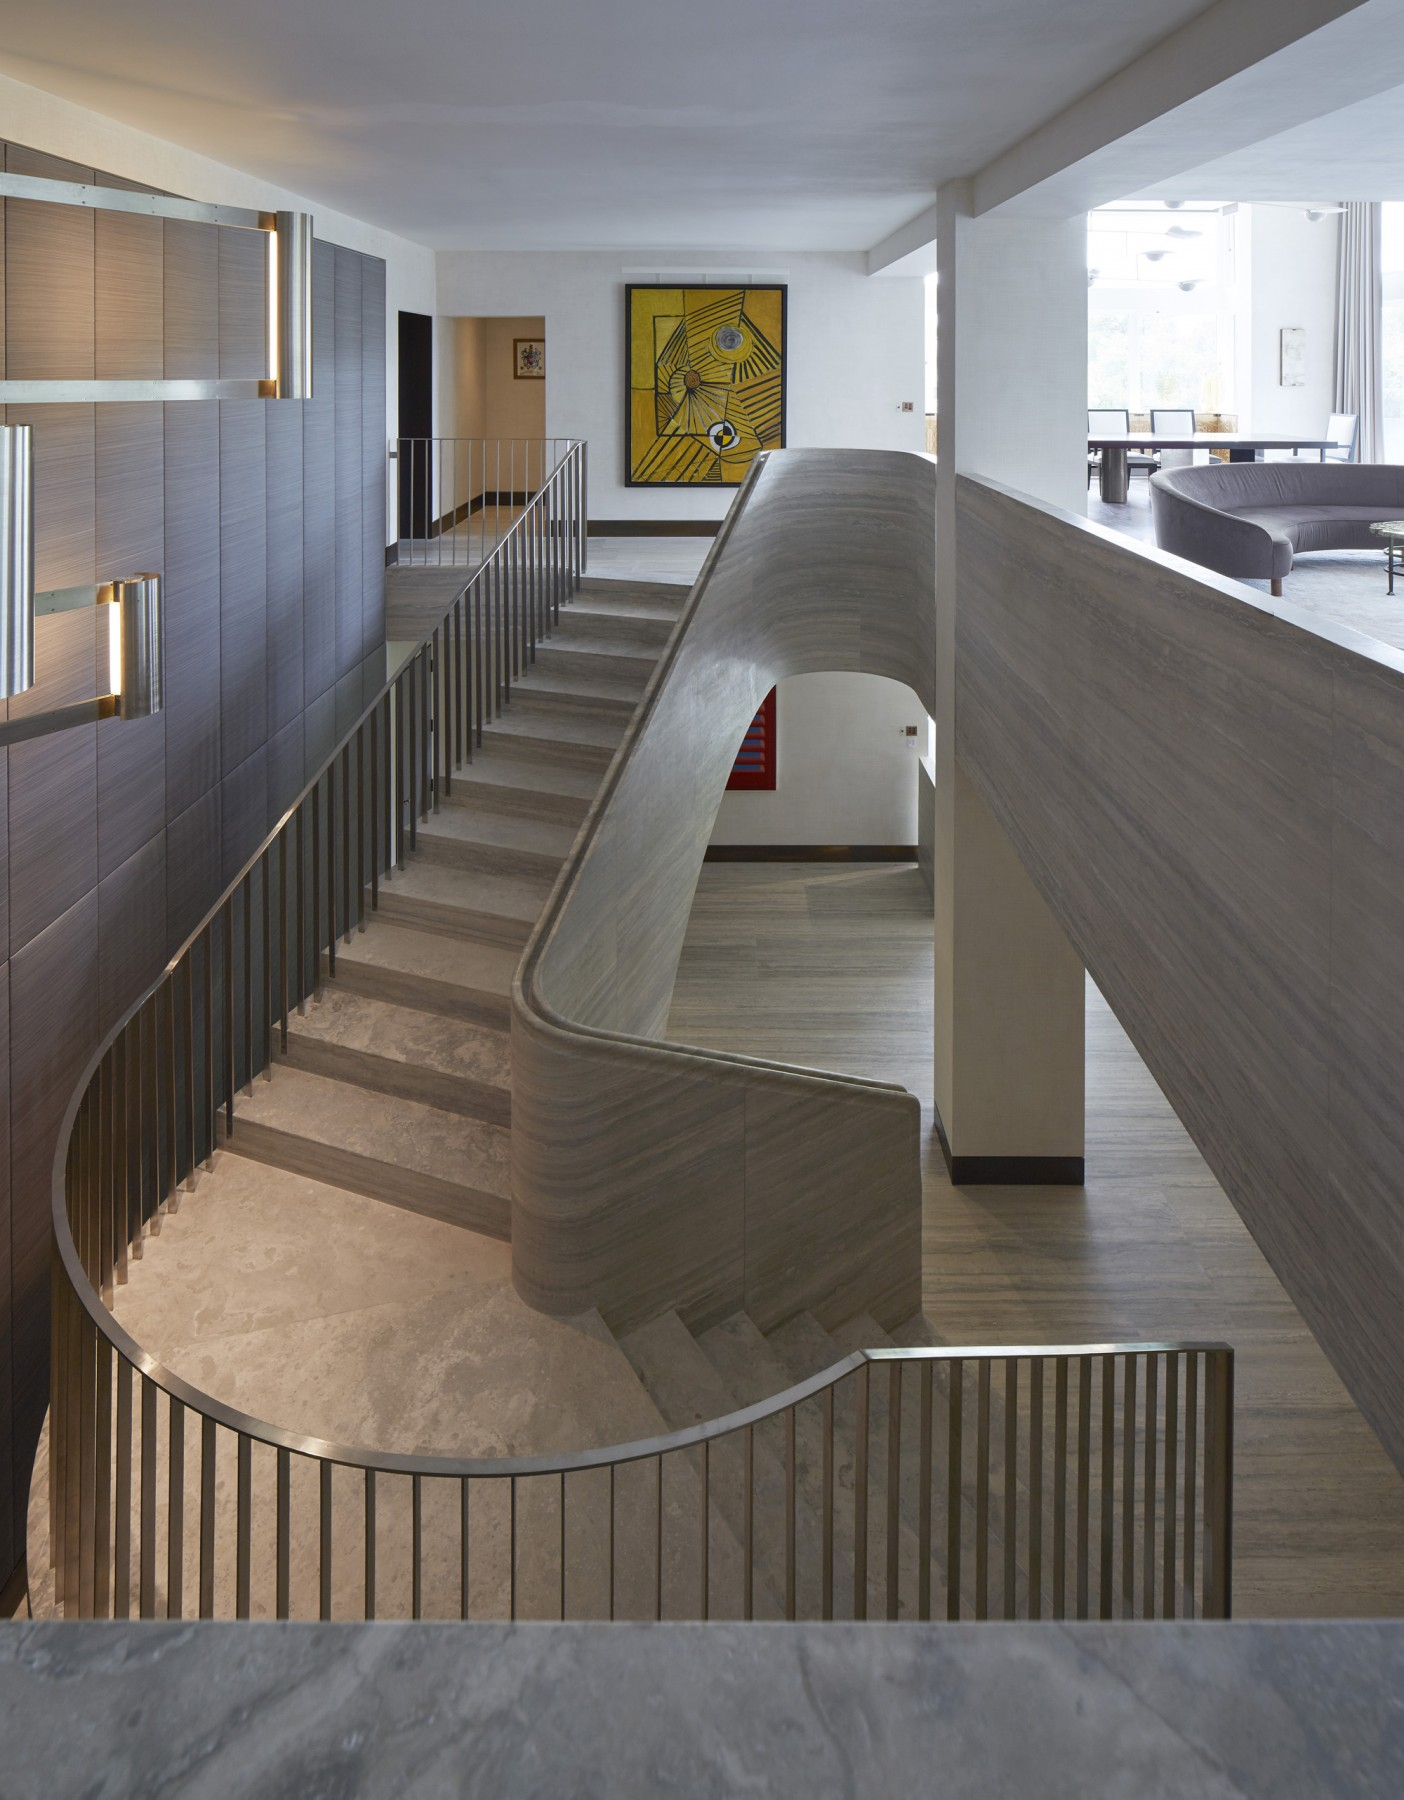 Jamie-Fobert-Architects- Travertine-stair-central-London-duplex-luxury-apartment- elegant-stone-stair